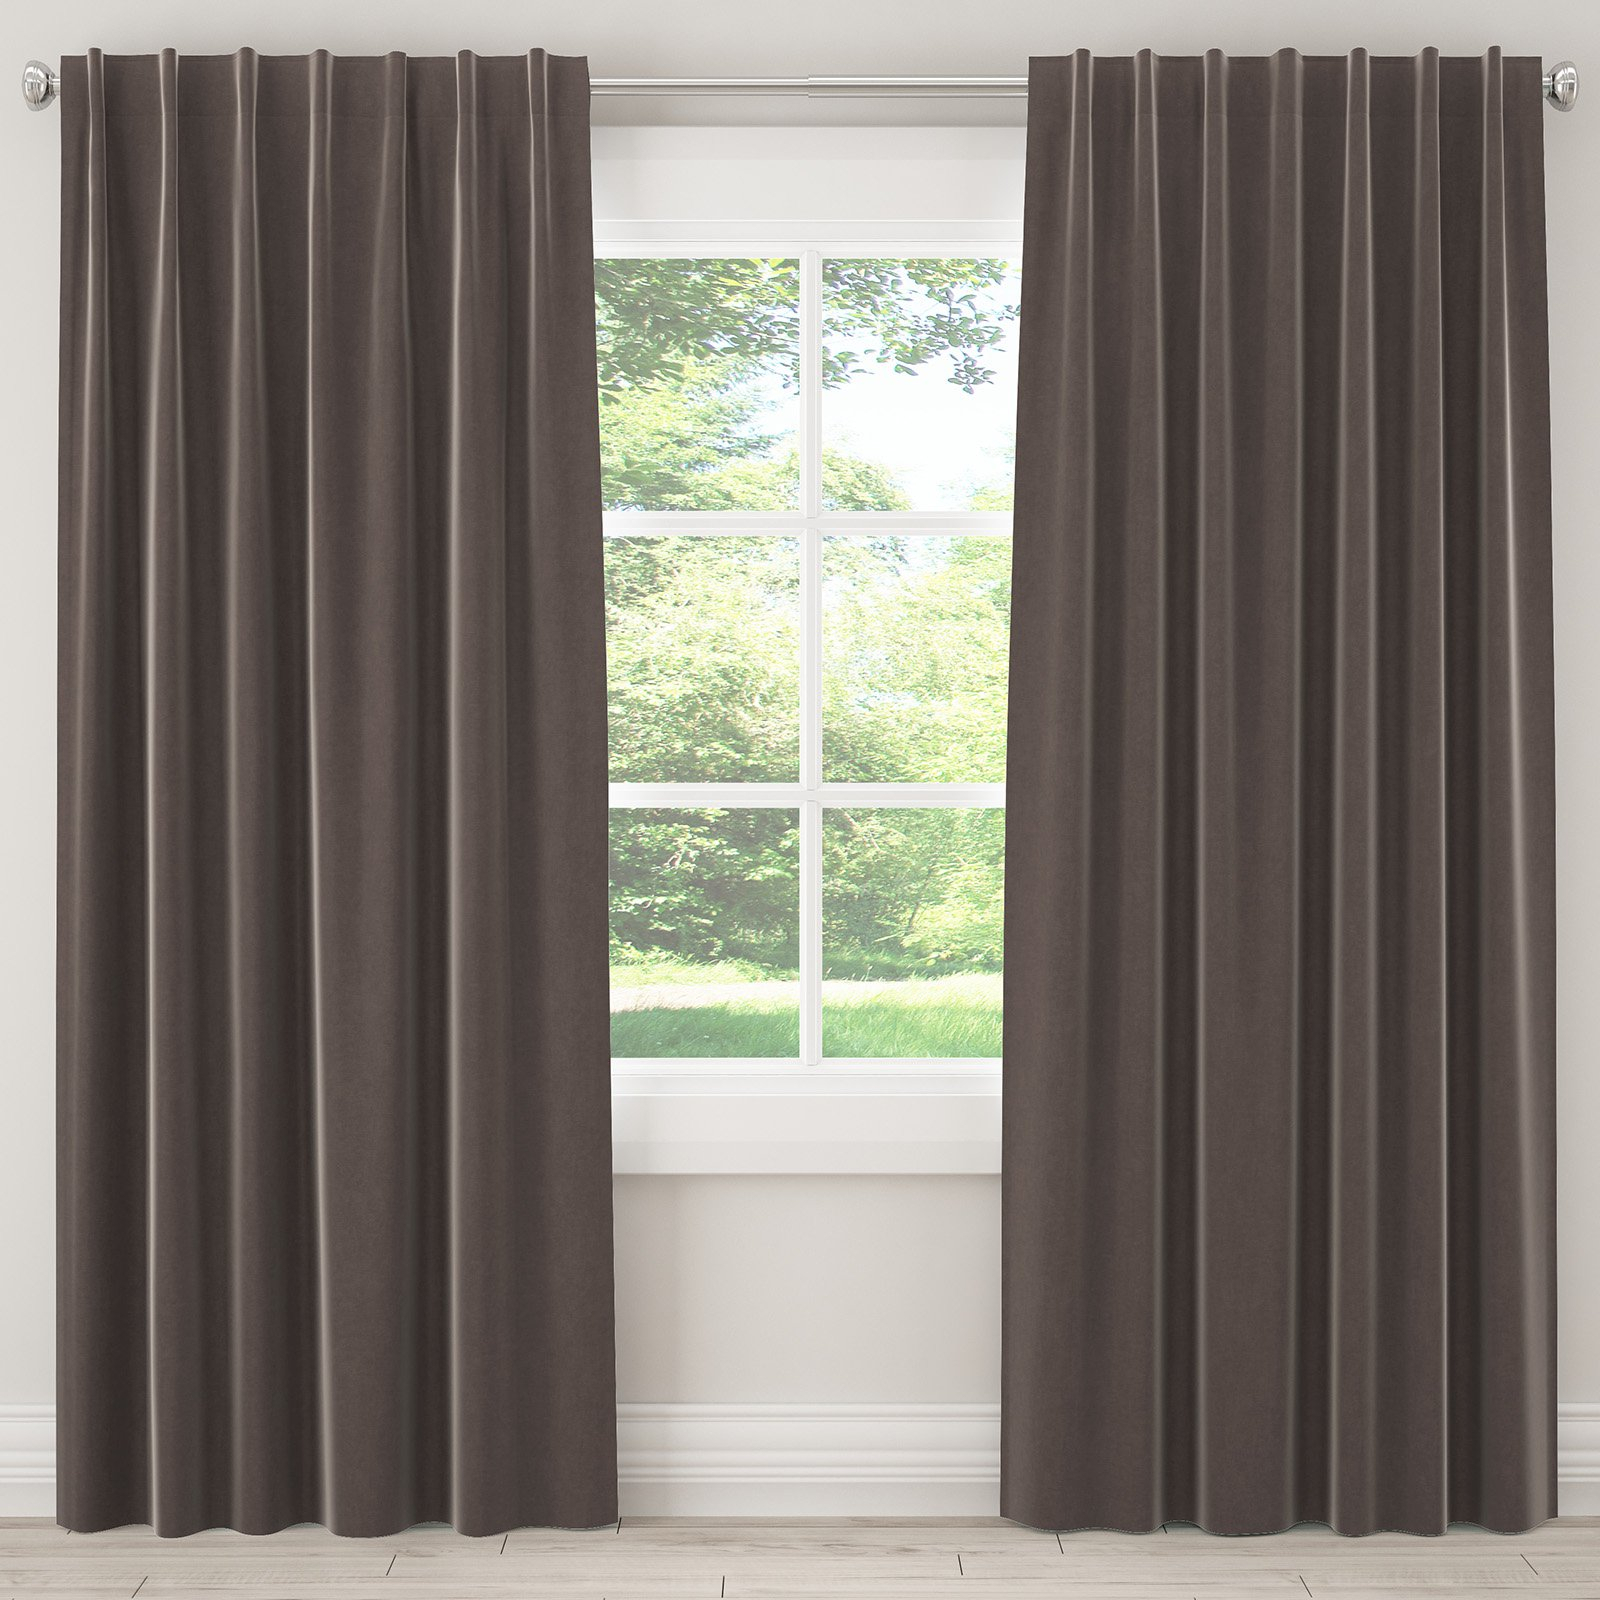 Skyline Furniture Velvet Single Panel Rod Pocket Tab Throughout Silvertone Grommet Thermal Insulated Blackout Curtain Panel Pairs (View 30 of 30)